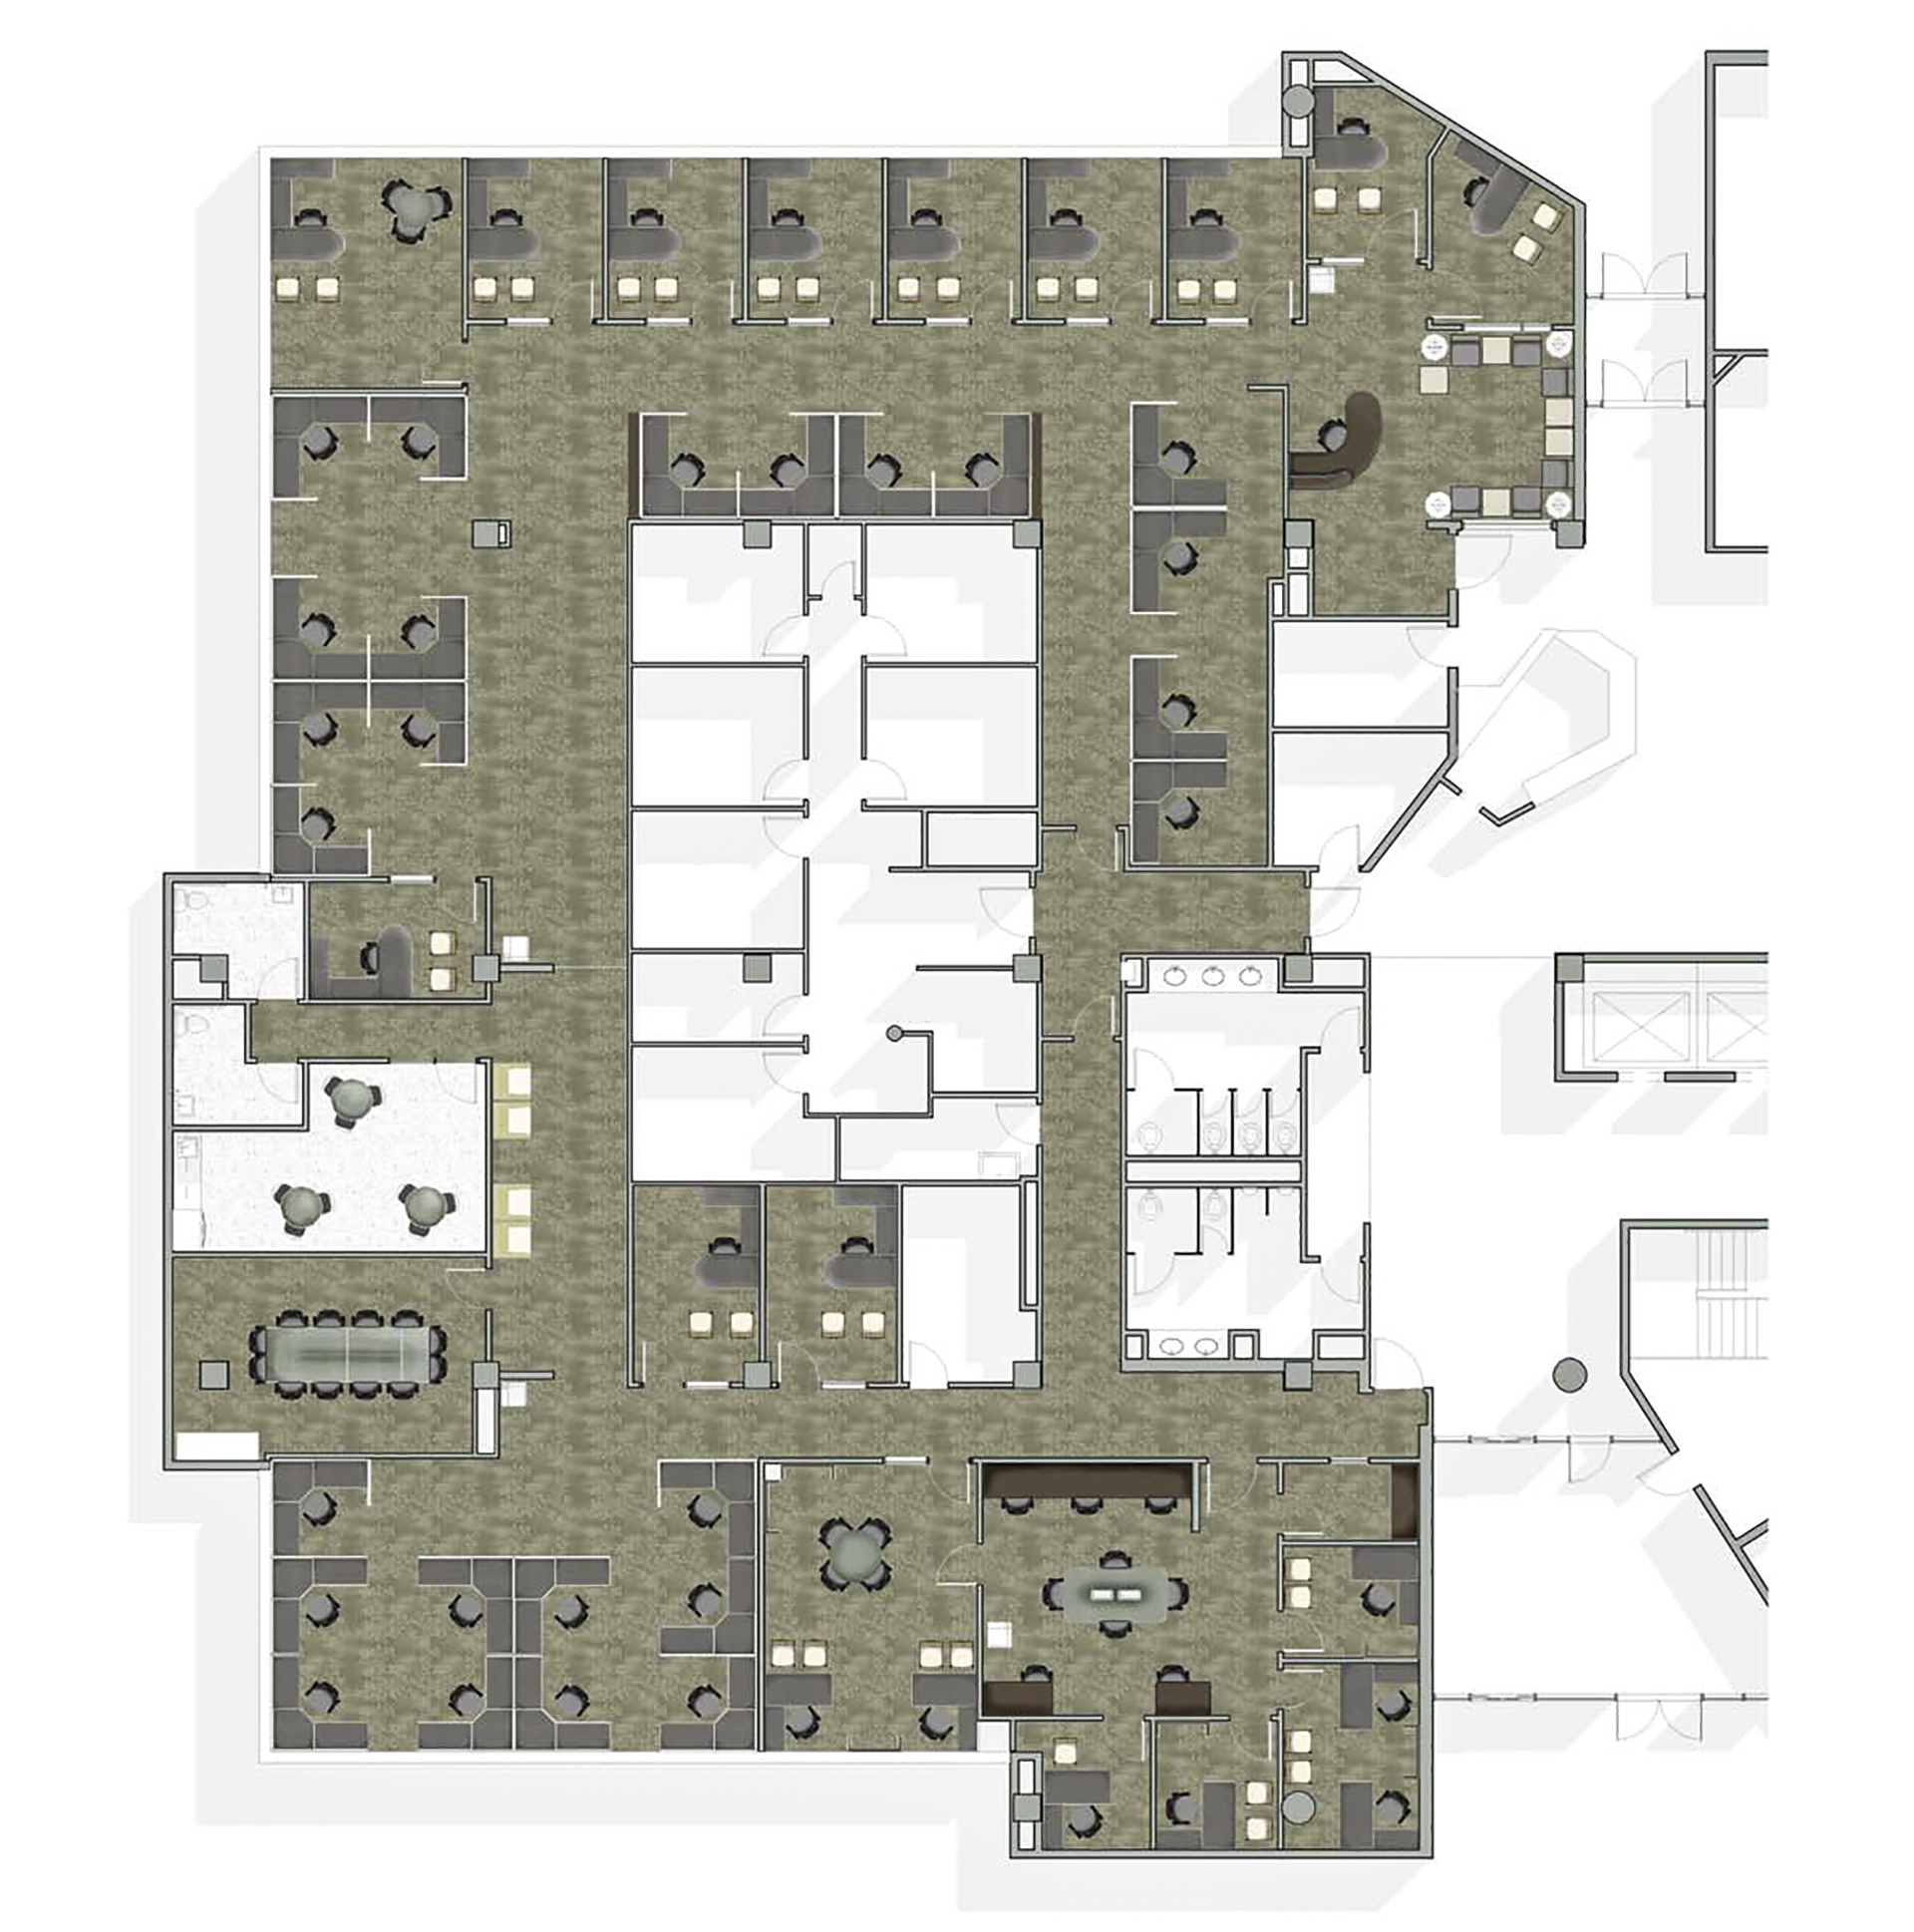 12-10.08 – (LIGHTER) Rendered Floor Plan Scheme B.psd